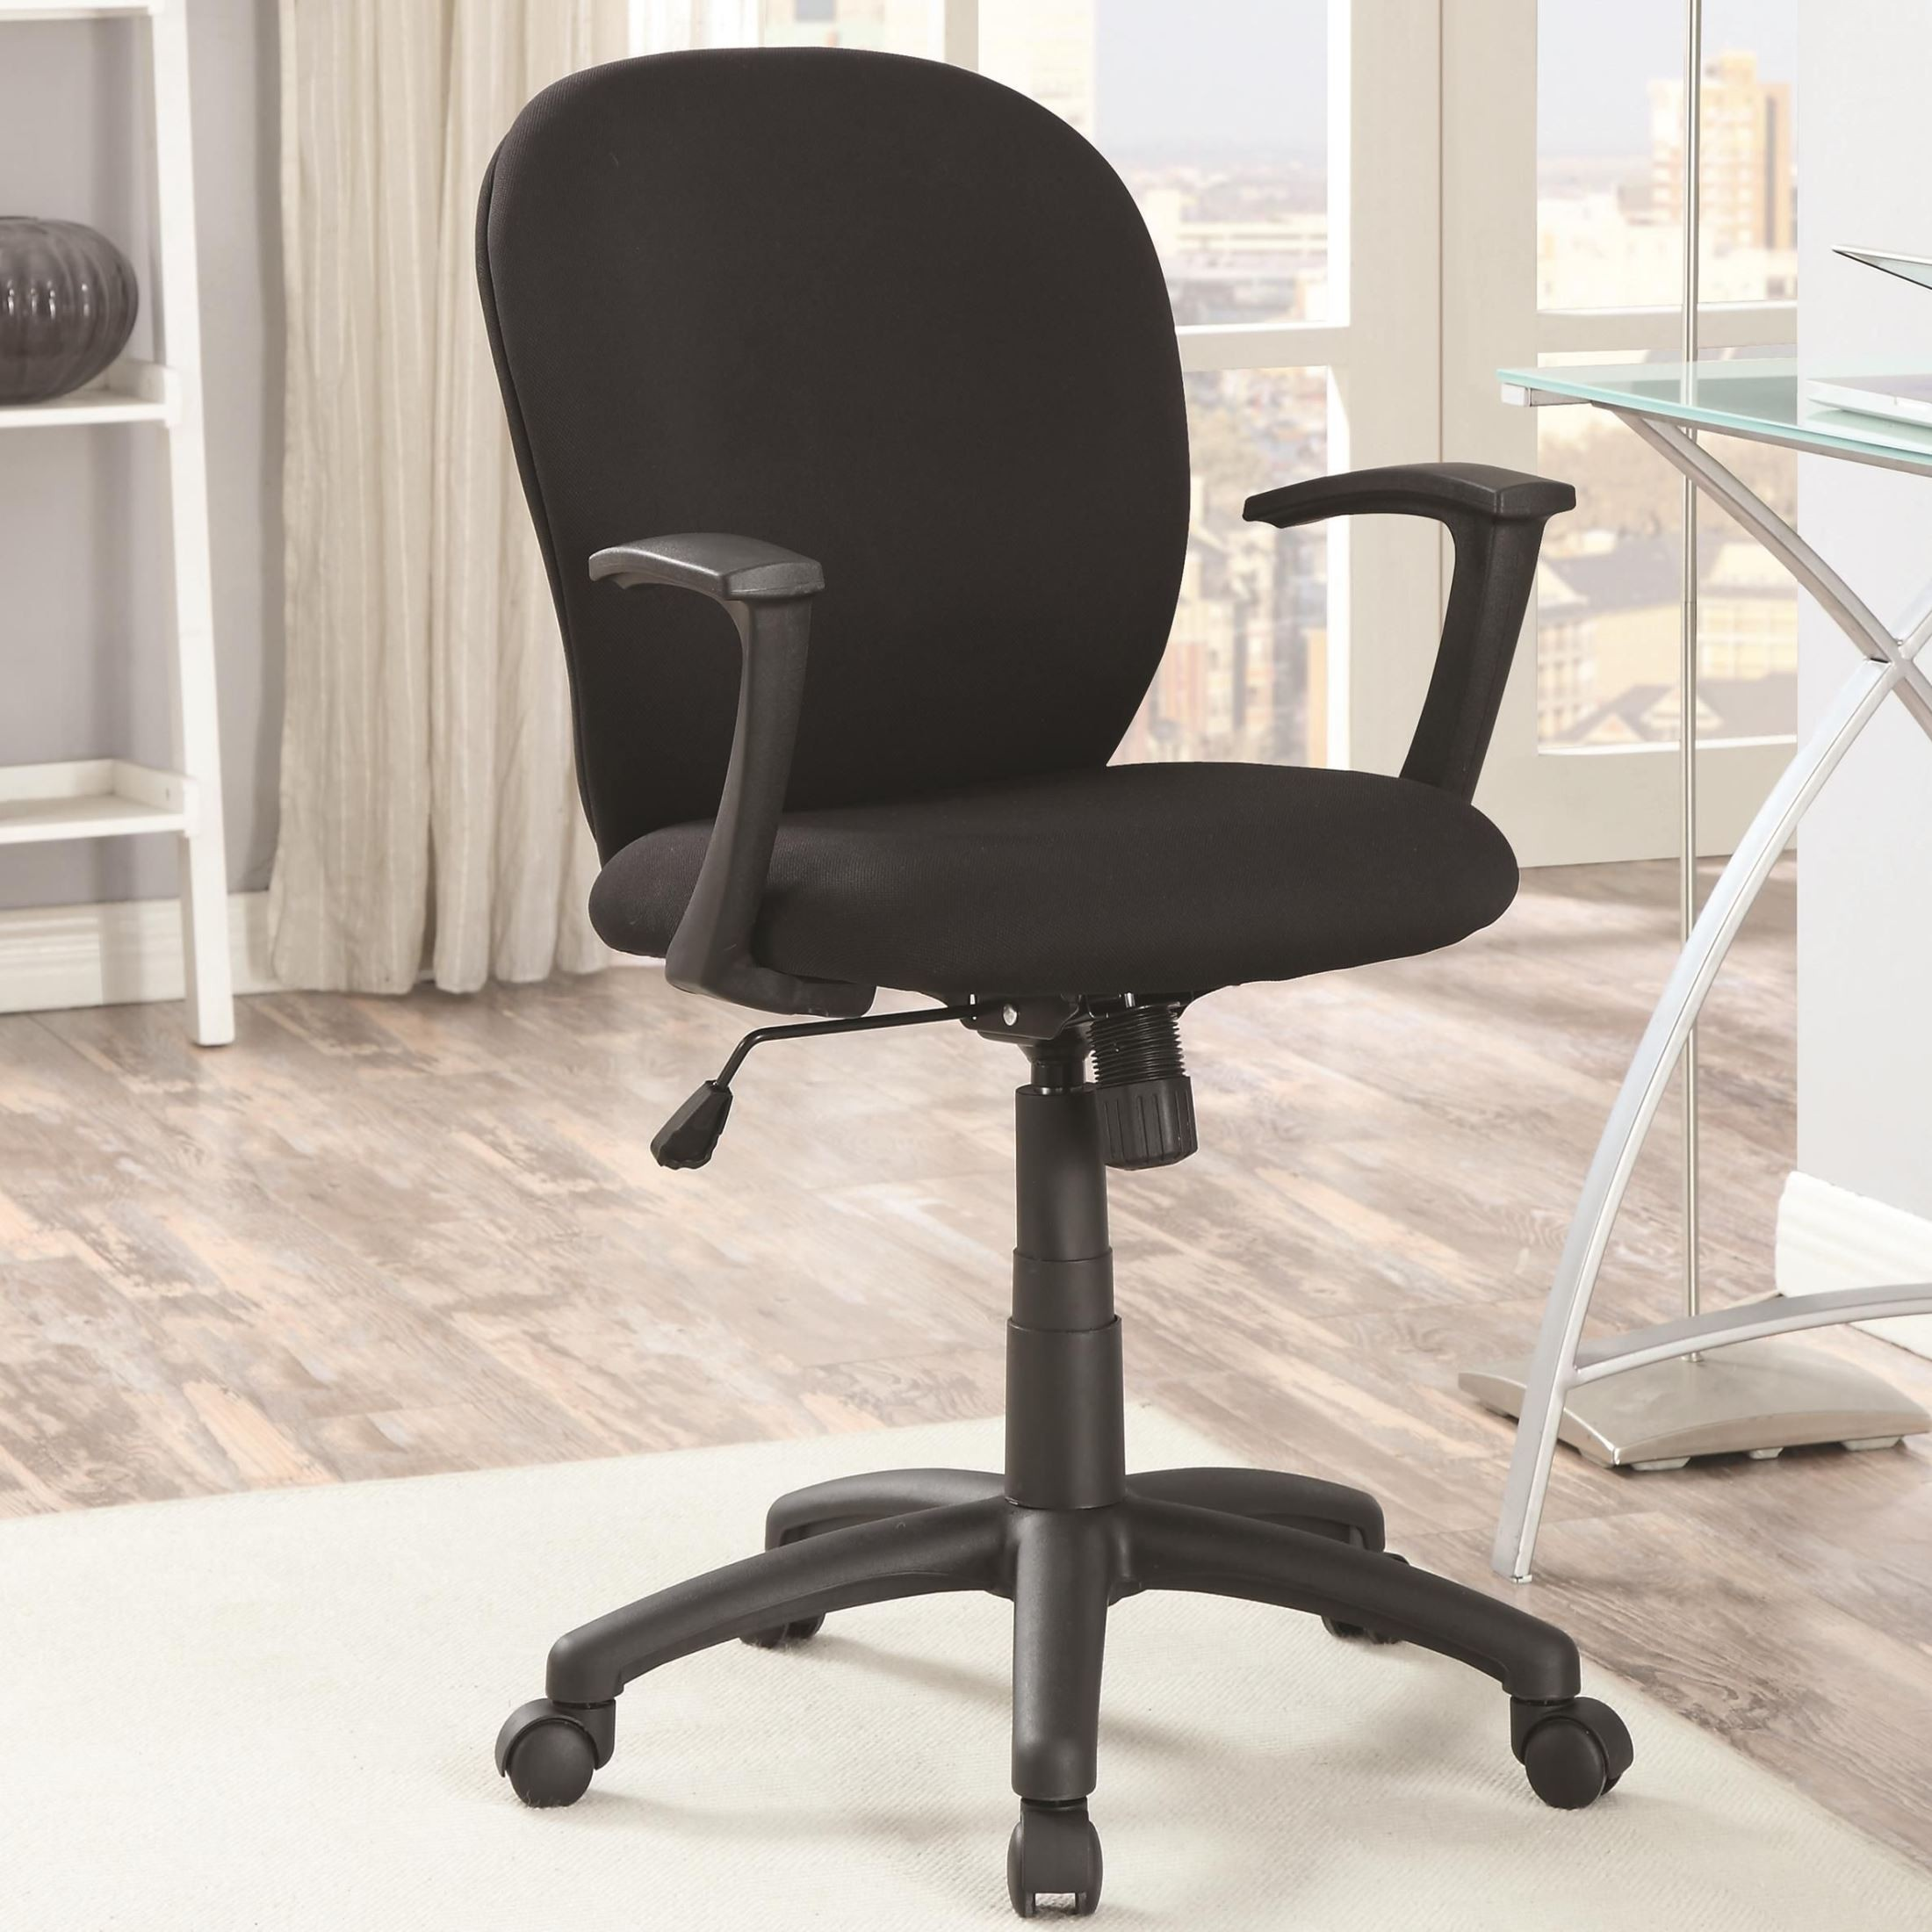 800537 Black Padded Office Chair From Coaster 800537 Coleman Furniture